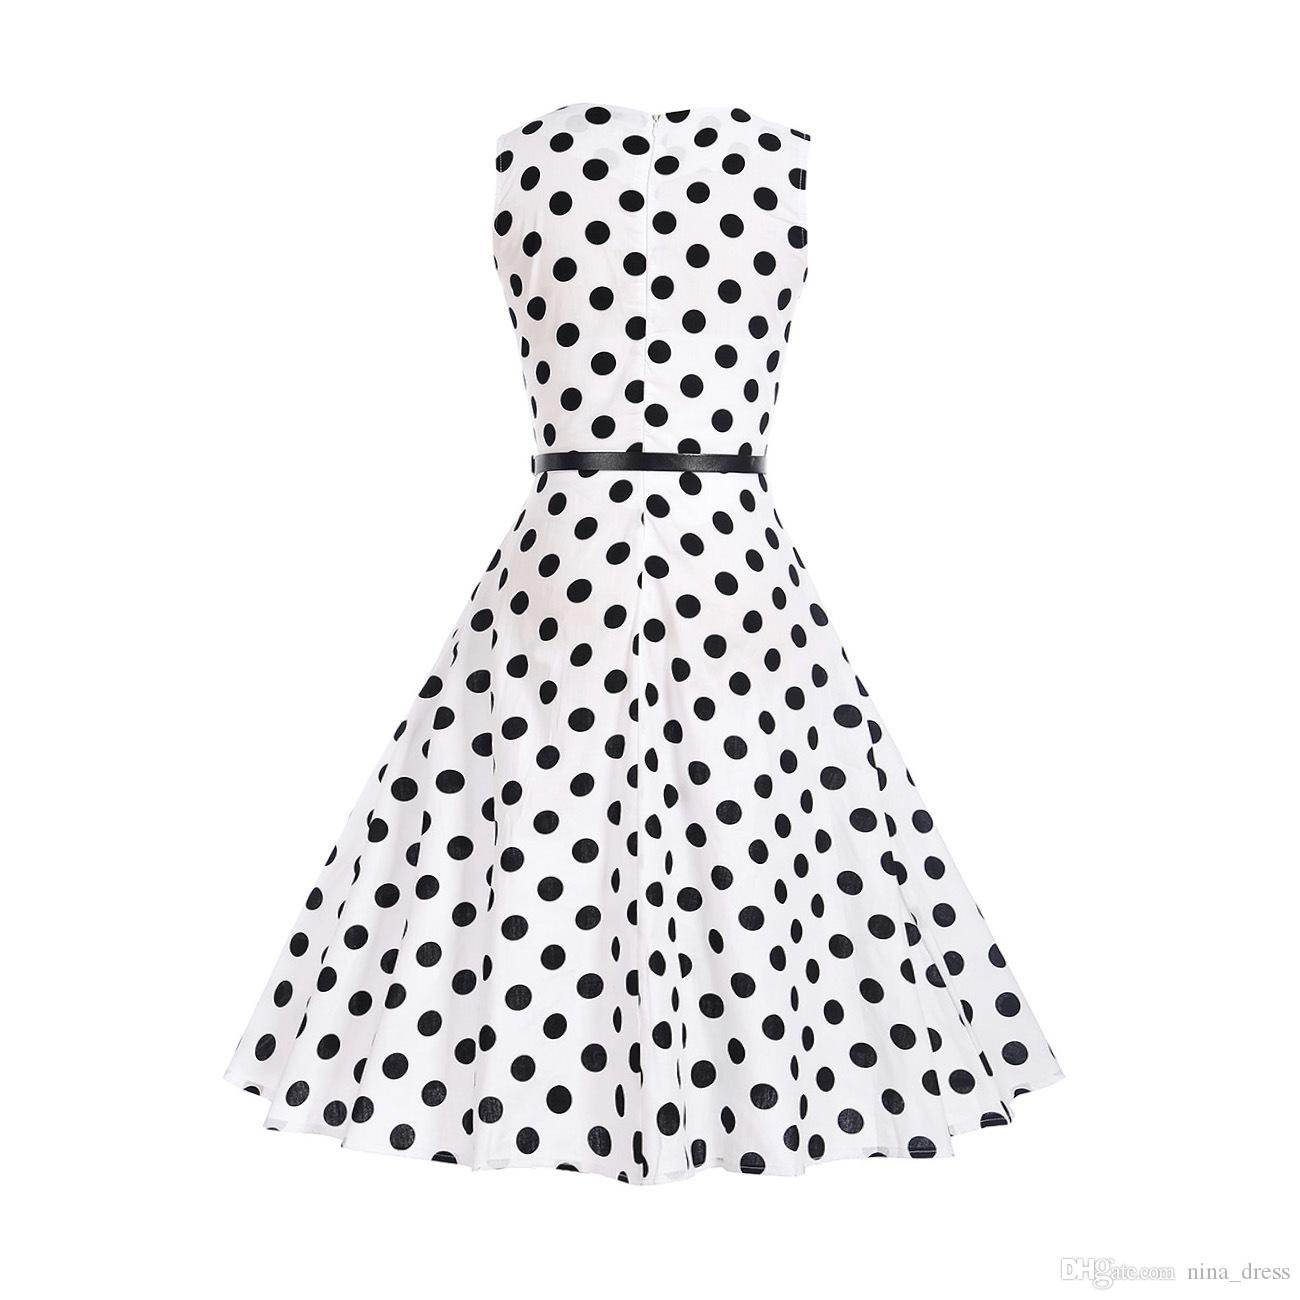 2018 New Polka Dot Dress Hepburn Style Vintage Swing Dress Print Dress a  Hair Substitute Apparel Women s Clothing Party Dresses Online with   13.31 Piece on ... 00f25d25fe26